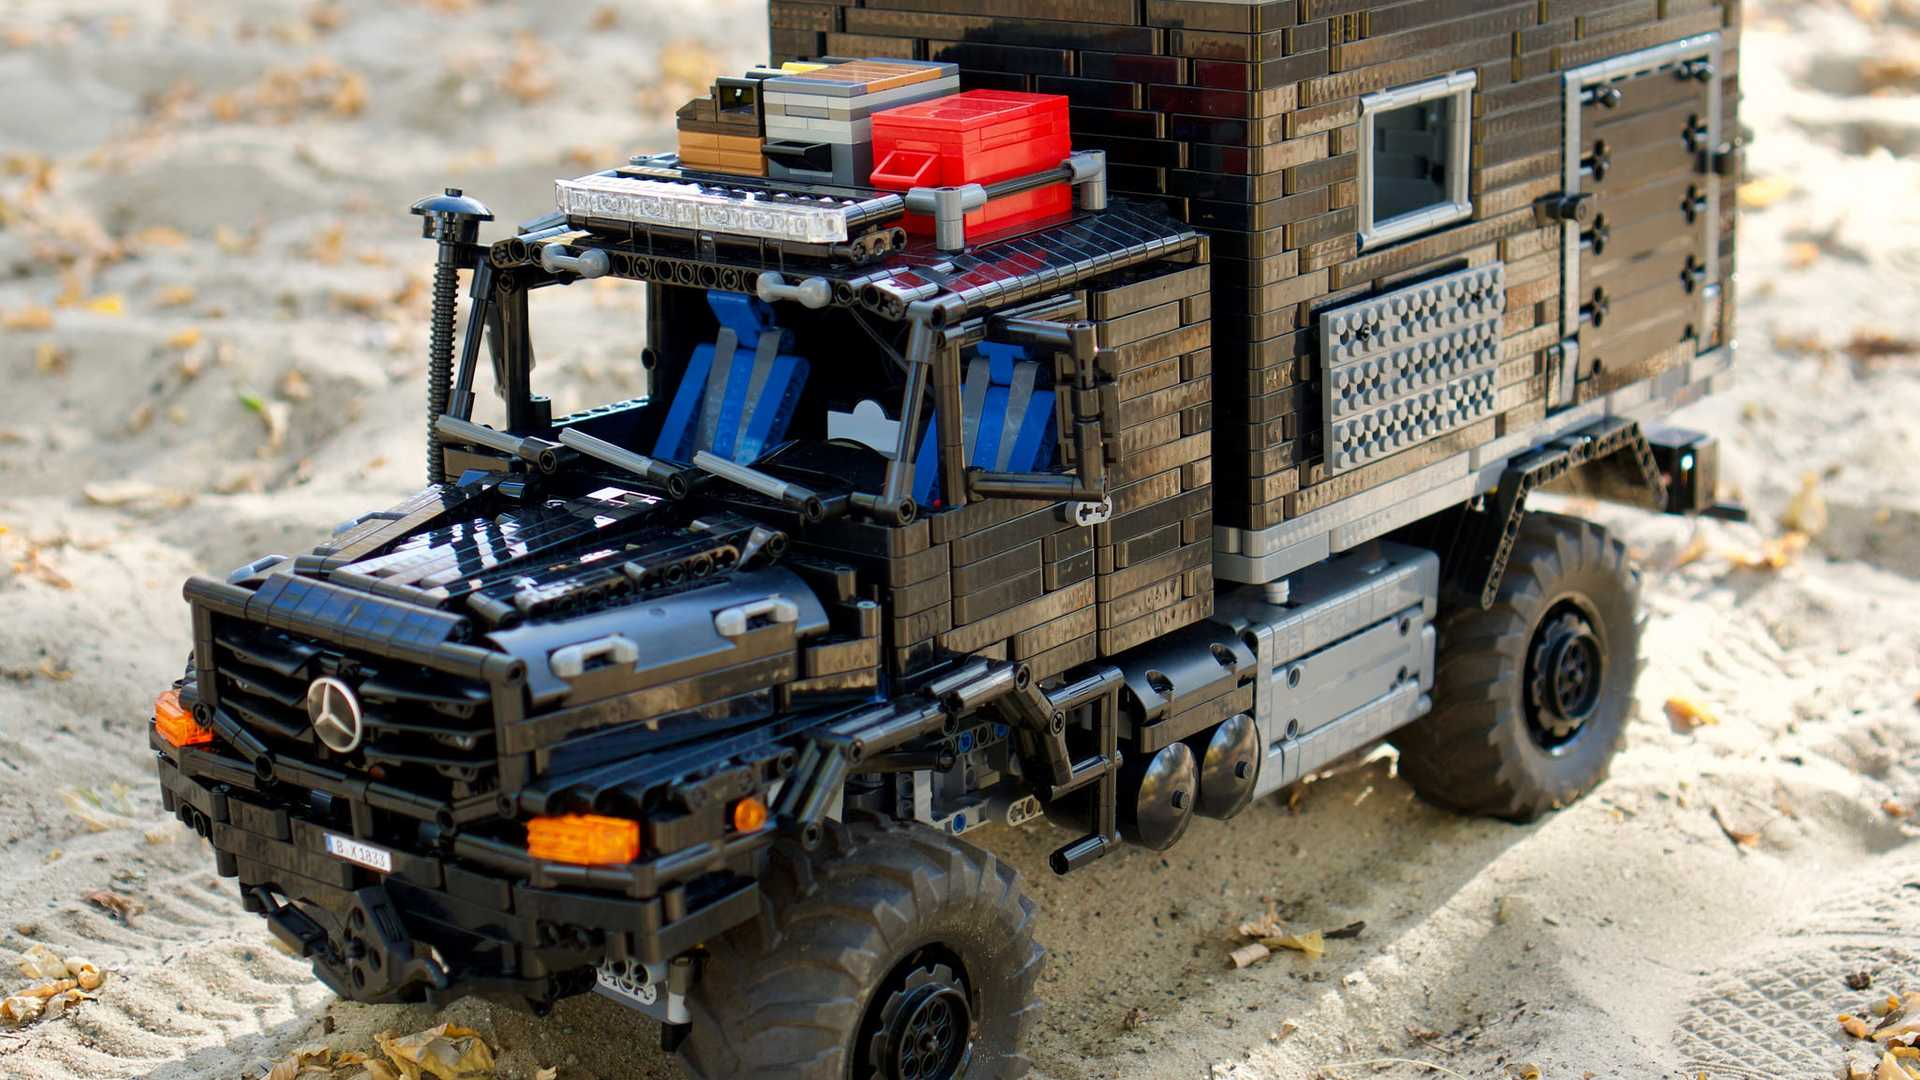 Lego Technic Extreme RV Is Closest You'll Ever Get To Real Thing